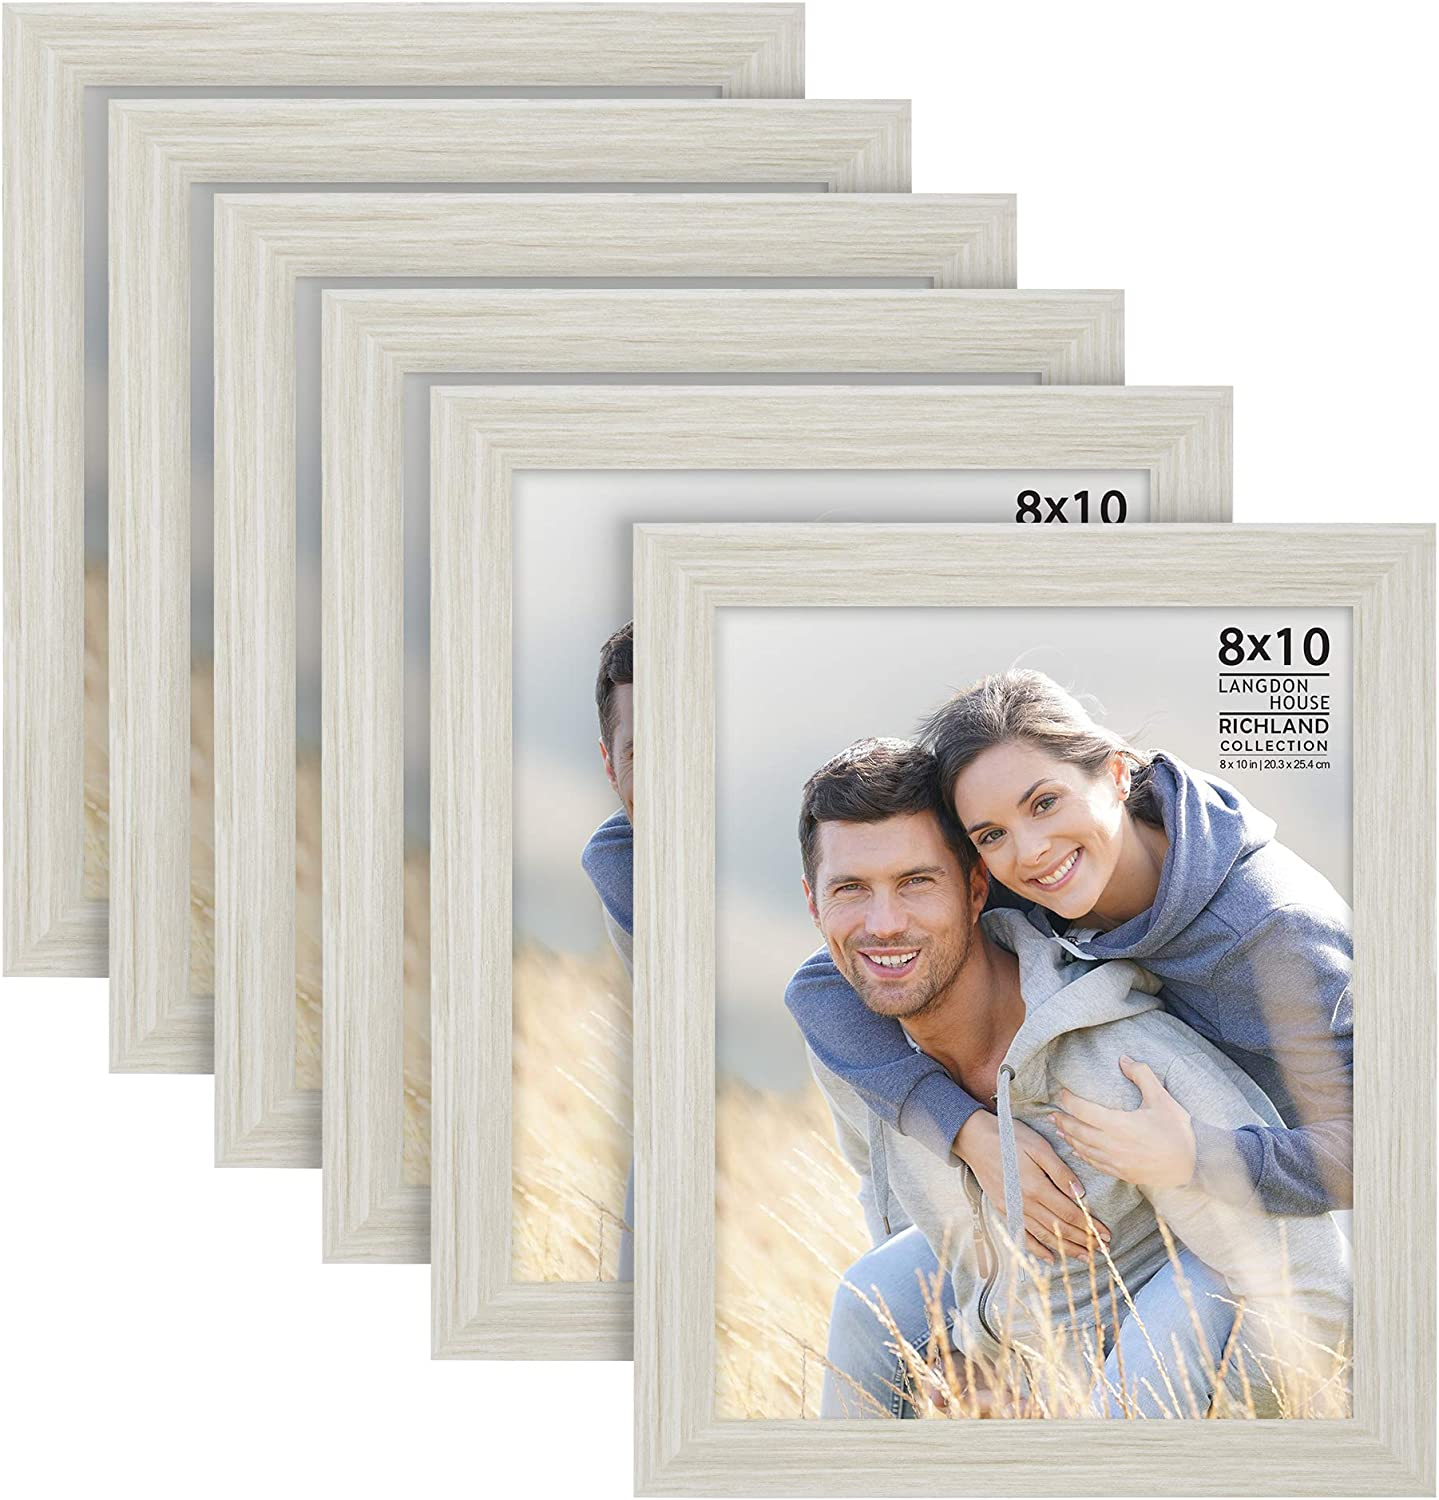 Langdon House 8x10 Picture Frames (Almond White, 6 Pack) Woodgra